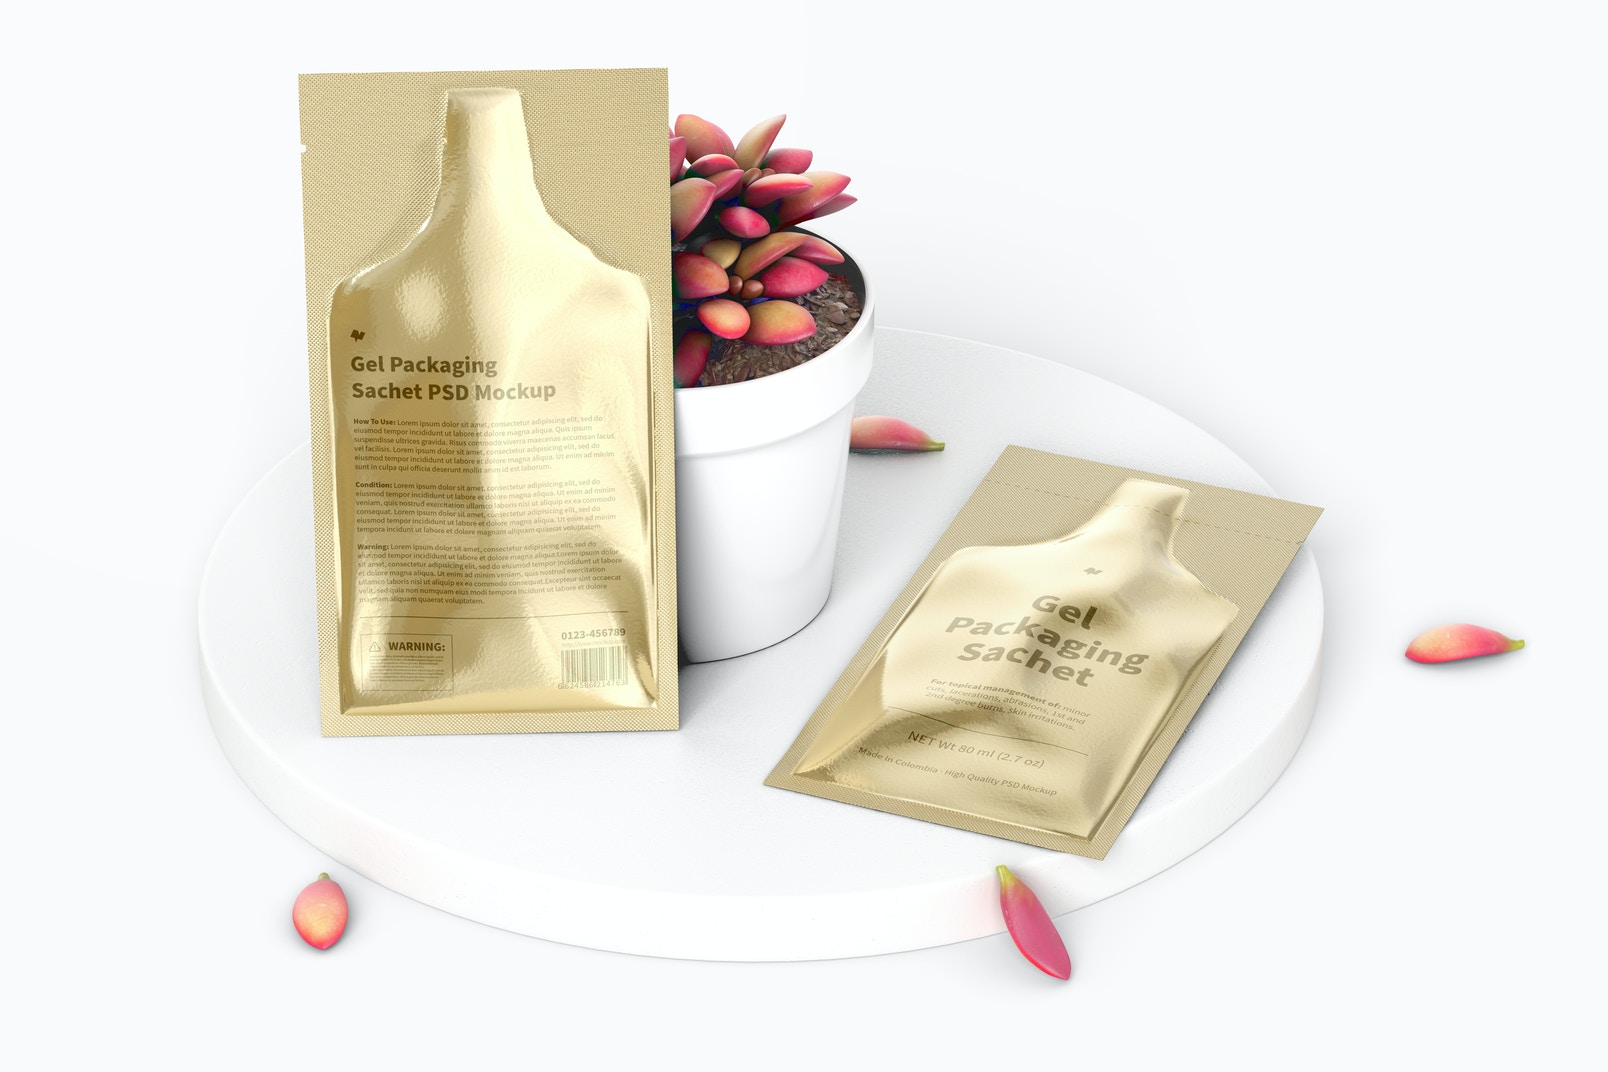 Gel Packaging Sachets Mockup, Leaned and Dropped